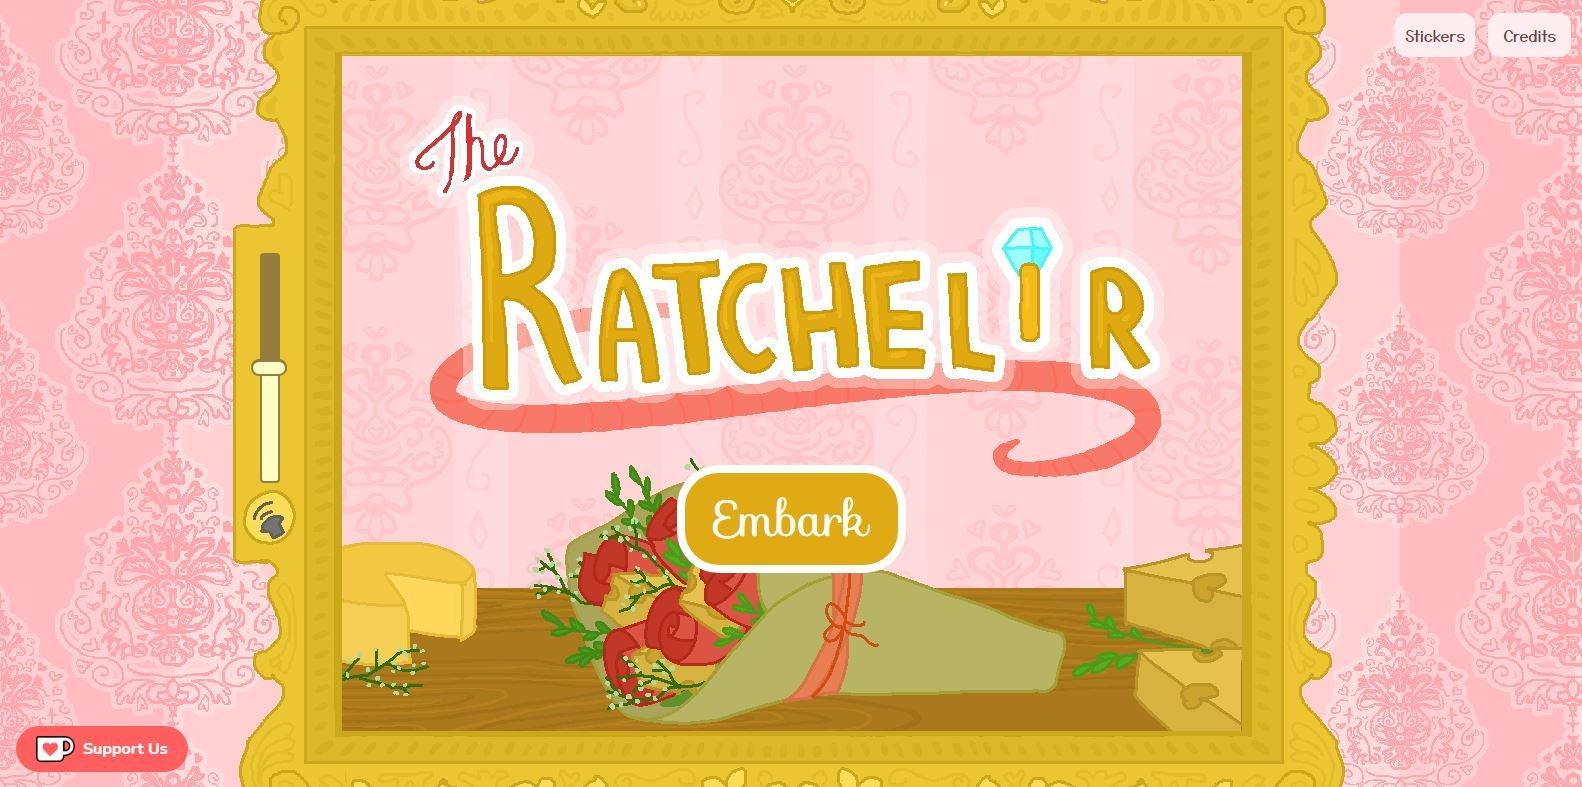 How to Play The Ratchelor – A Game Based on The Bachelor TV Series